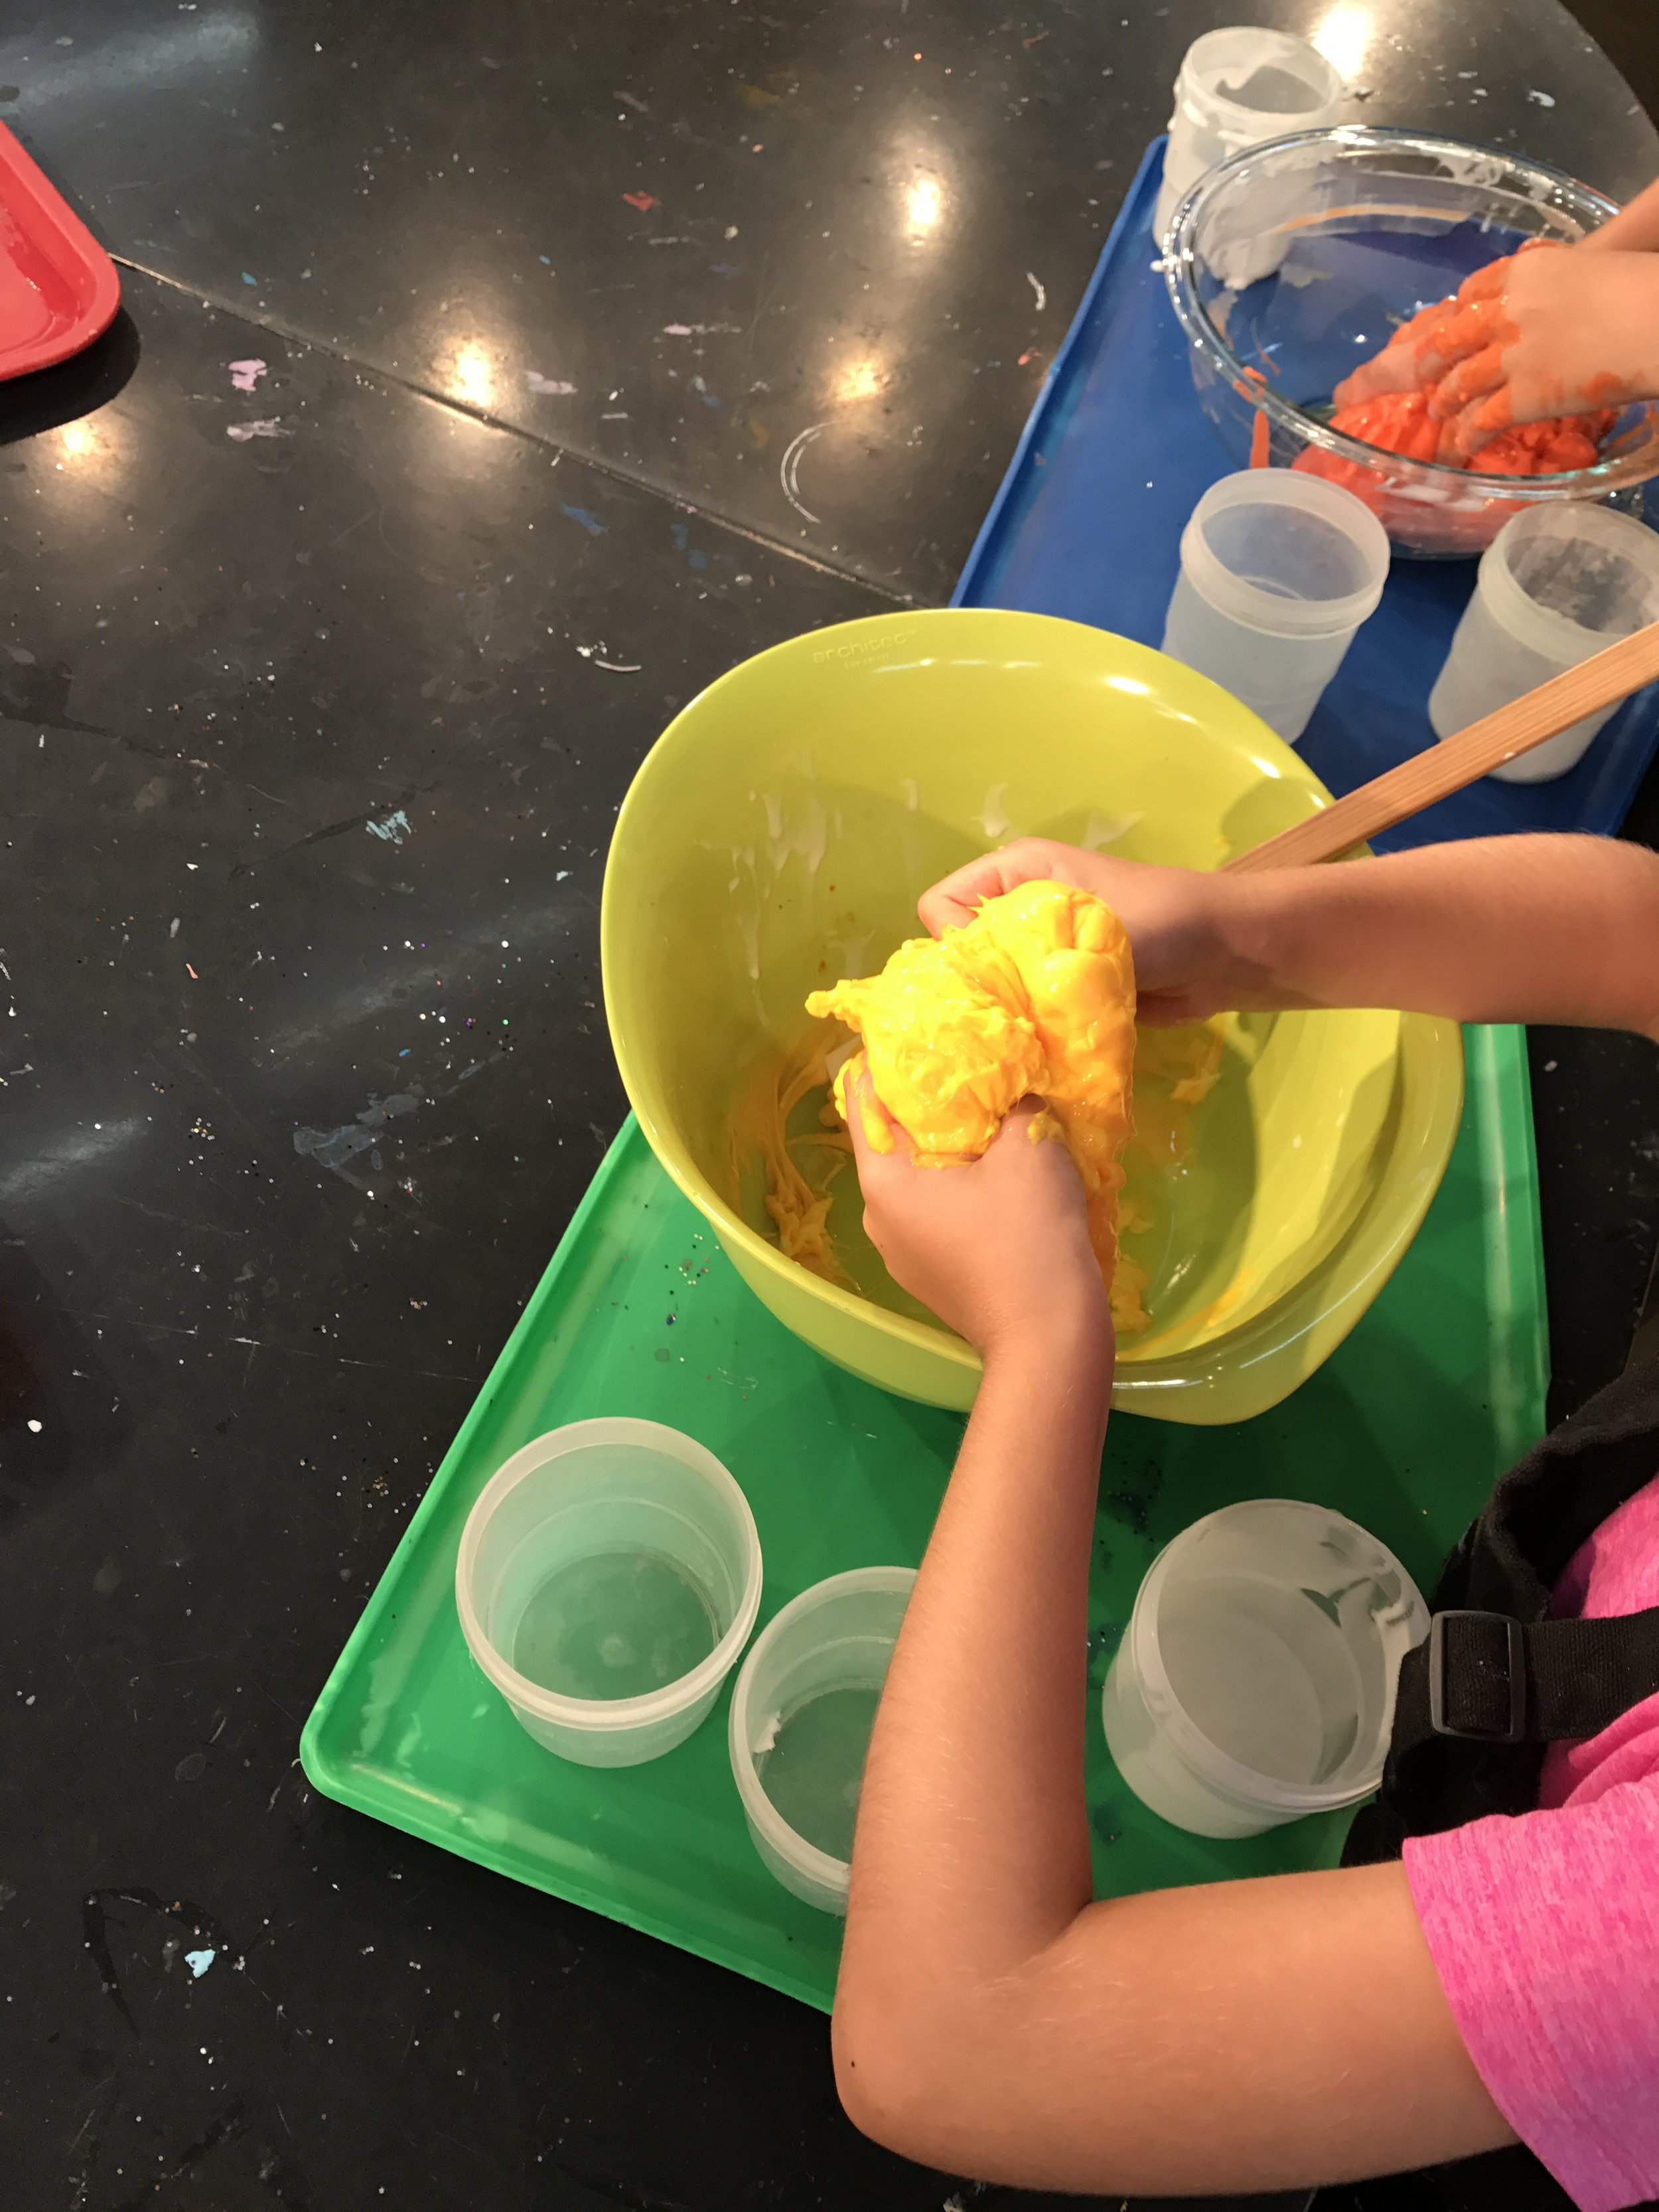 Tuesday, May 29 - Slime!2:00 pm - 6:00 pm$8 members / $10 non-membersCome make slime! Kids will get to mix, measure and stir to create their own slime. Their slime will be sent home in a ziploc baggie.Sign up for a time slot here.